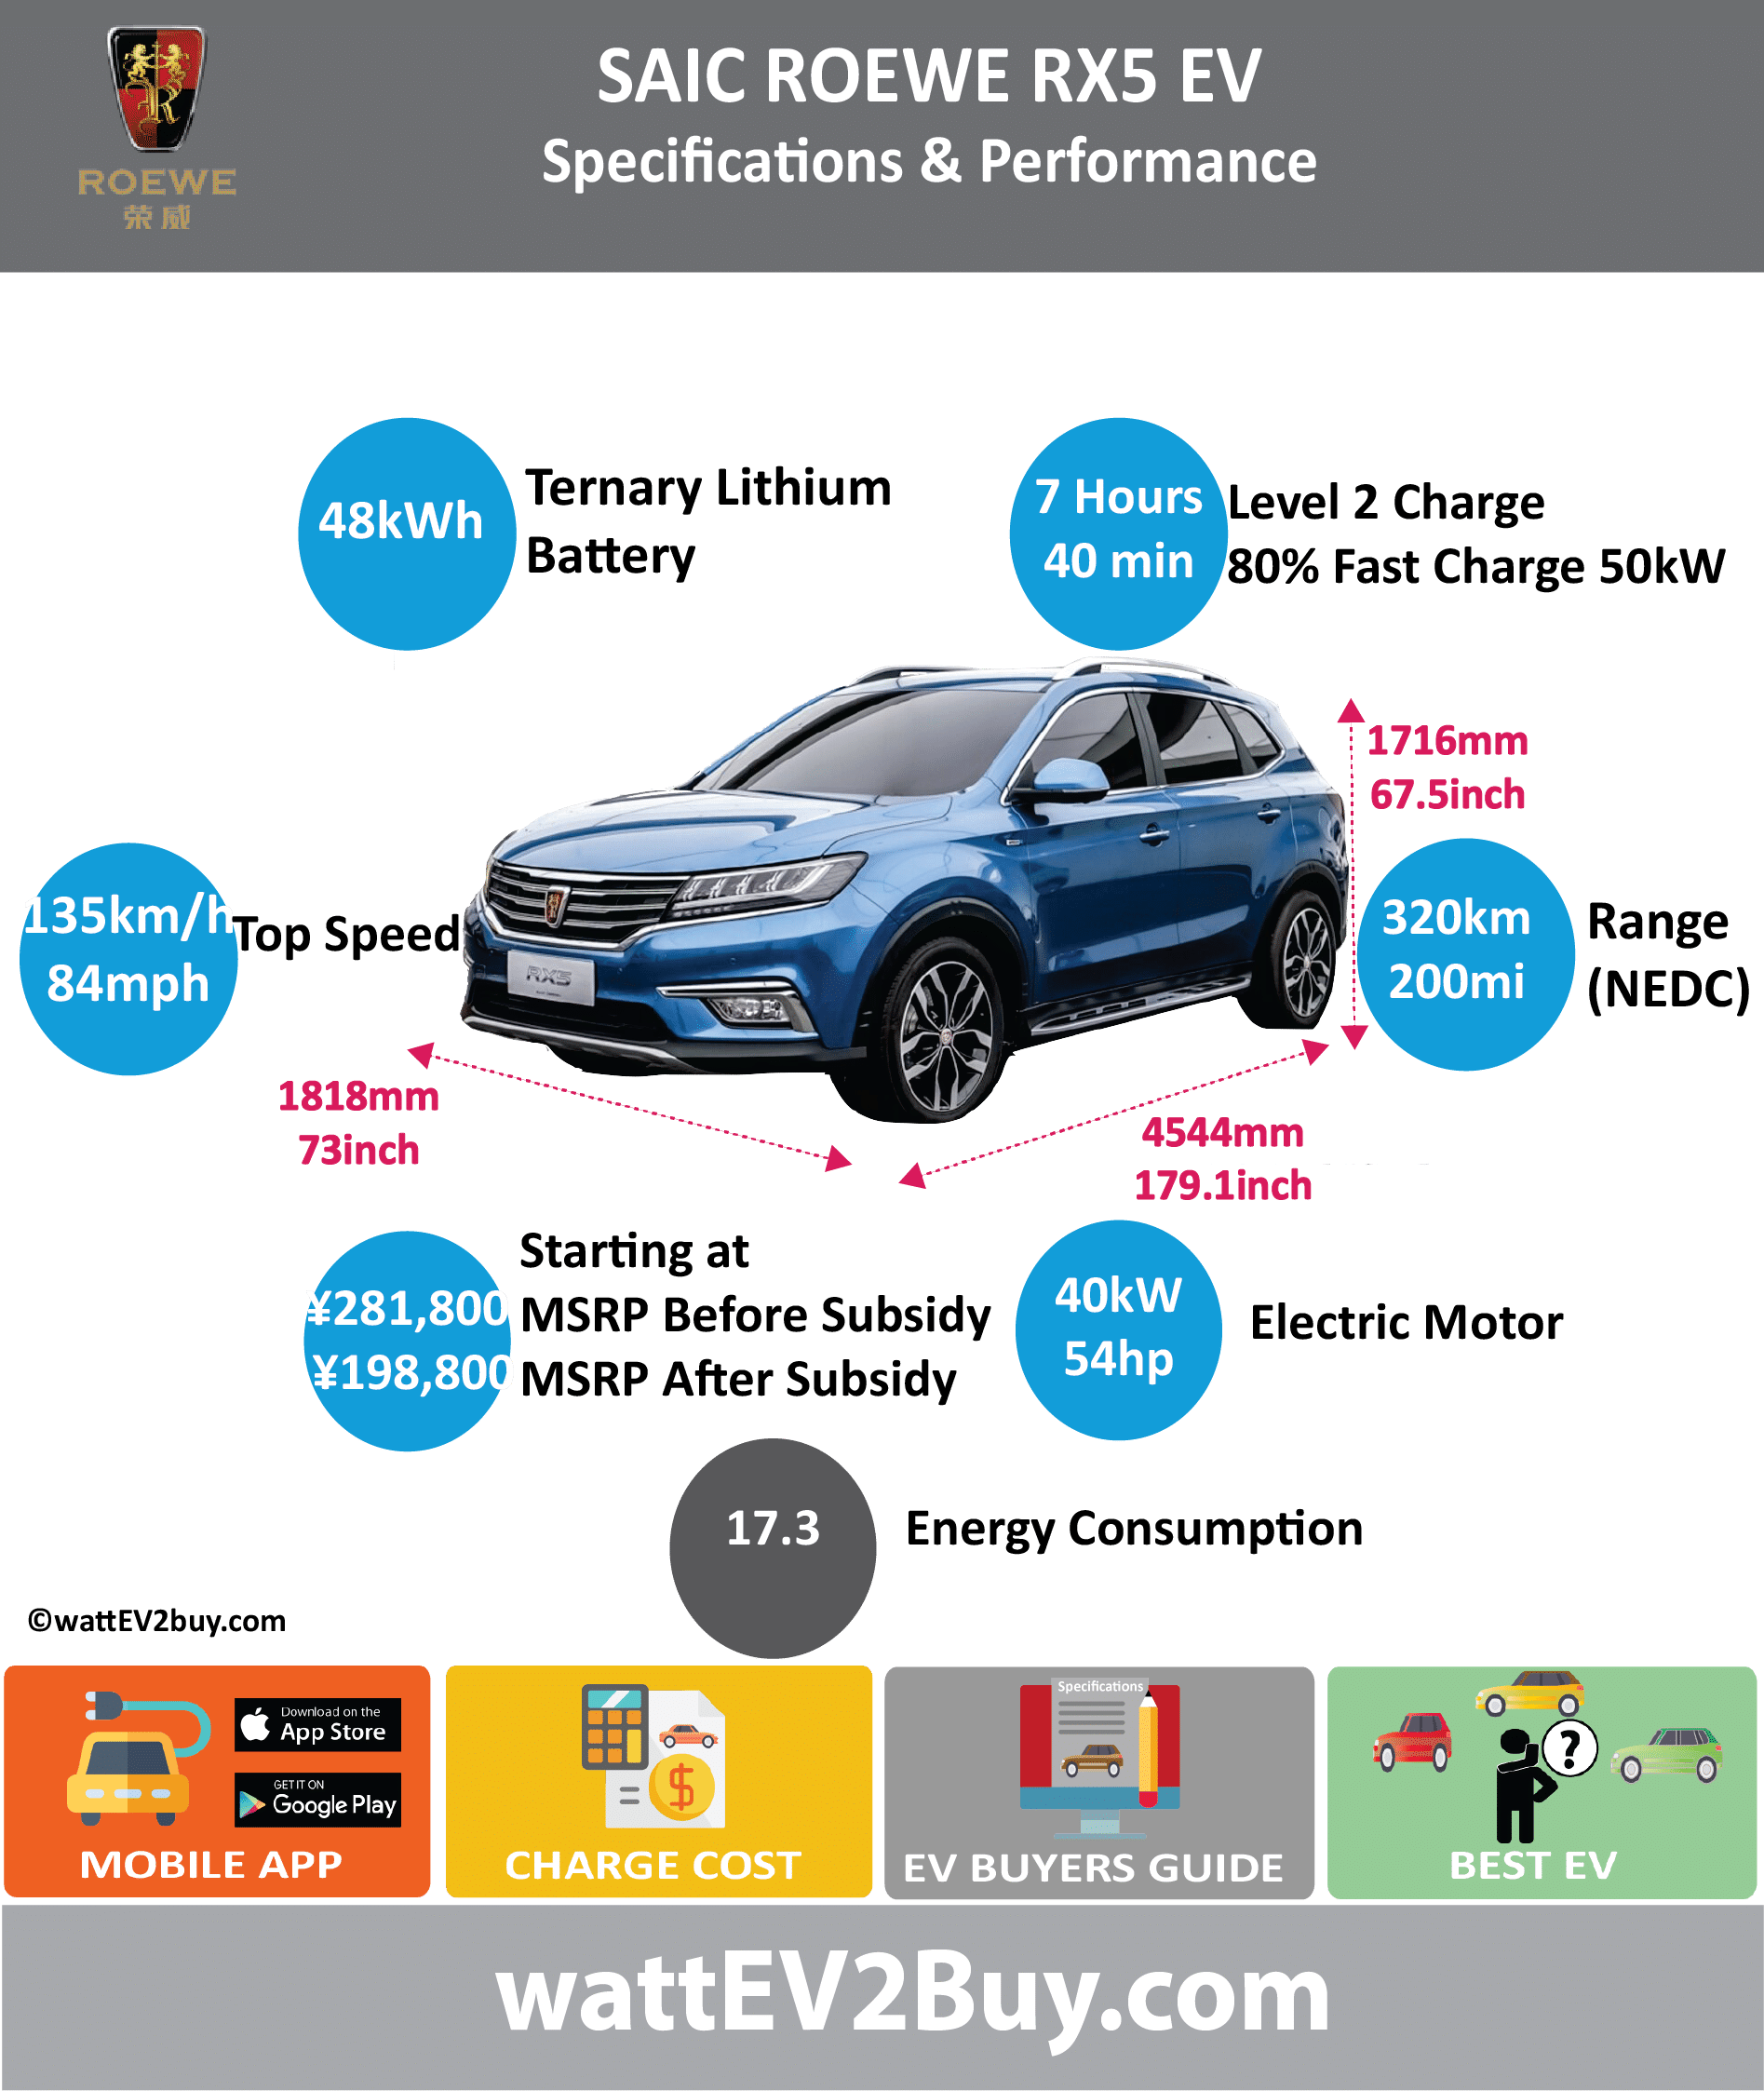 SAIC ROEWE RX5 EV Specs	 wattev2Buy.com	2017 Battery Chemistry	Ternary Battery Capacity kWh	48.3 Battery Nominal rating kWh	 Voltage V	 Amps Ah	 Cells	 Modules	 Weight (kg)	357 Cell Type	 Cooling	 Cycles	 Depth of Discharge (DOD)	 Energy Density Wh/kg	 Battery Manufacturer	Shanghai Jie New Power Battery System Co., Ltd Battery Warranty - years	 Battery Warranty - km	 Battery Electric Range - at constant 38mph	266 Battery Electric Range - at constant 60km/h	425 Battery Electric Range - NEDC Mi	200 Battery Electric Range - NEDC km	320 Electric Top Speed - mph	84 Electric Top Speed - km/h	135 Acceleration 0 - 100km/h sec	7.5 Acceleration 0 - 50km/h sec	 Onboard Charger kW	7 LV 1 Charge kW	 LV 1 Charge Time (Hours)	 LV 2 Charge kW	 LV 2 Charge Time (Hours)	7 LV 3 CCS/Combo kW	 LV 3 Charge Time (min to 80%)	40 Charge Connector	 MPGe Combined - miles	 MPGe Combined - km	 MPGe City - miles	 MPGe City - km	 MPGe Highway - miles	 MPGe Highway - km	 Max Power - hp	113 Max Power - kW	85 Max Torque - lb.ft	188 Max Torque - N.m	255 Drivetrain	 Electric Motor Output kW	40 Electric Motor Output hp	53.6408 Electric Motor Manufacturer	Huayu Automotive Electric System Co., Ltd Electric Motor Output kW	 Transmission	 Energy Consumption kWh/100km	17.3 MSRP (before incentives & destination)	 ¥281,800.00  MSRP after incentives	 ¥198,800.00  Vehicle	 Doors	 Seating	 Dimensions	 GVWR (kg)	 Curb Weight (kg)	1710 Payload Capacity (lbs)	 Towing Capacity (lbs)	 Ground Clearance (mm)	 Lenght (mm)	4554 Width (mm)	1855 Height (mm)	1716 Wheelbase (mm)	2700 Lenght (inc)	179.1 Width (inc)	73.0 Height (inc)	67.5 Wheelbase (inc)	106.2 Other	 Market	 Class	 Incentives	 Safety Level	 Chinese Name	荣威 eRX5 Model Code	CSA6456BEV1